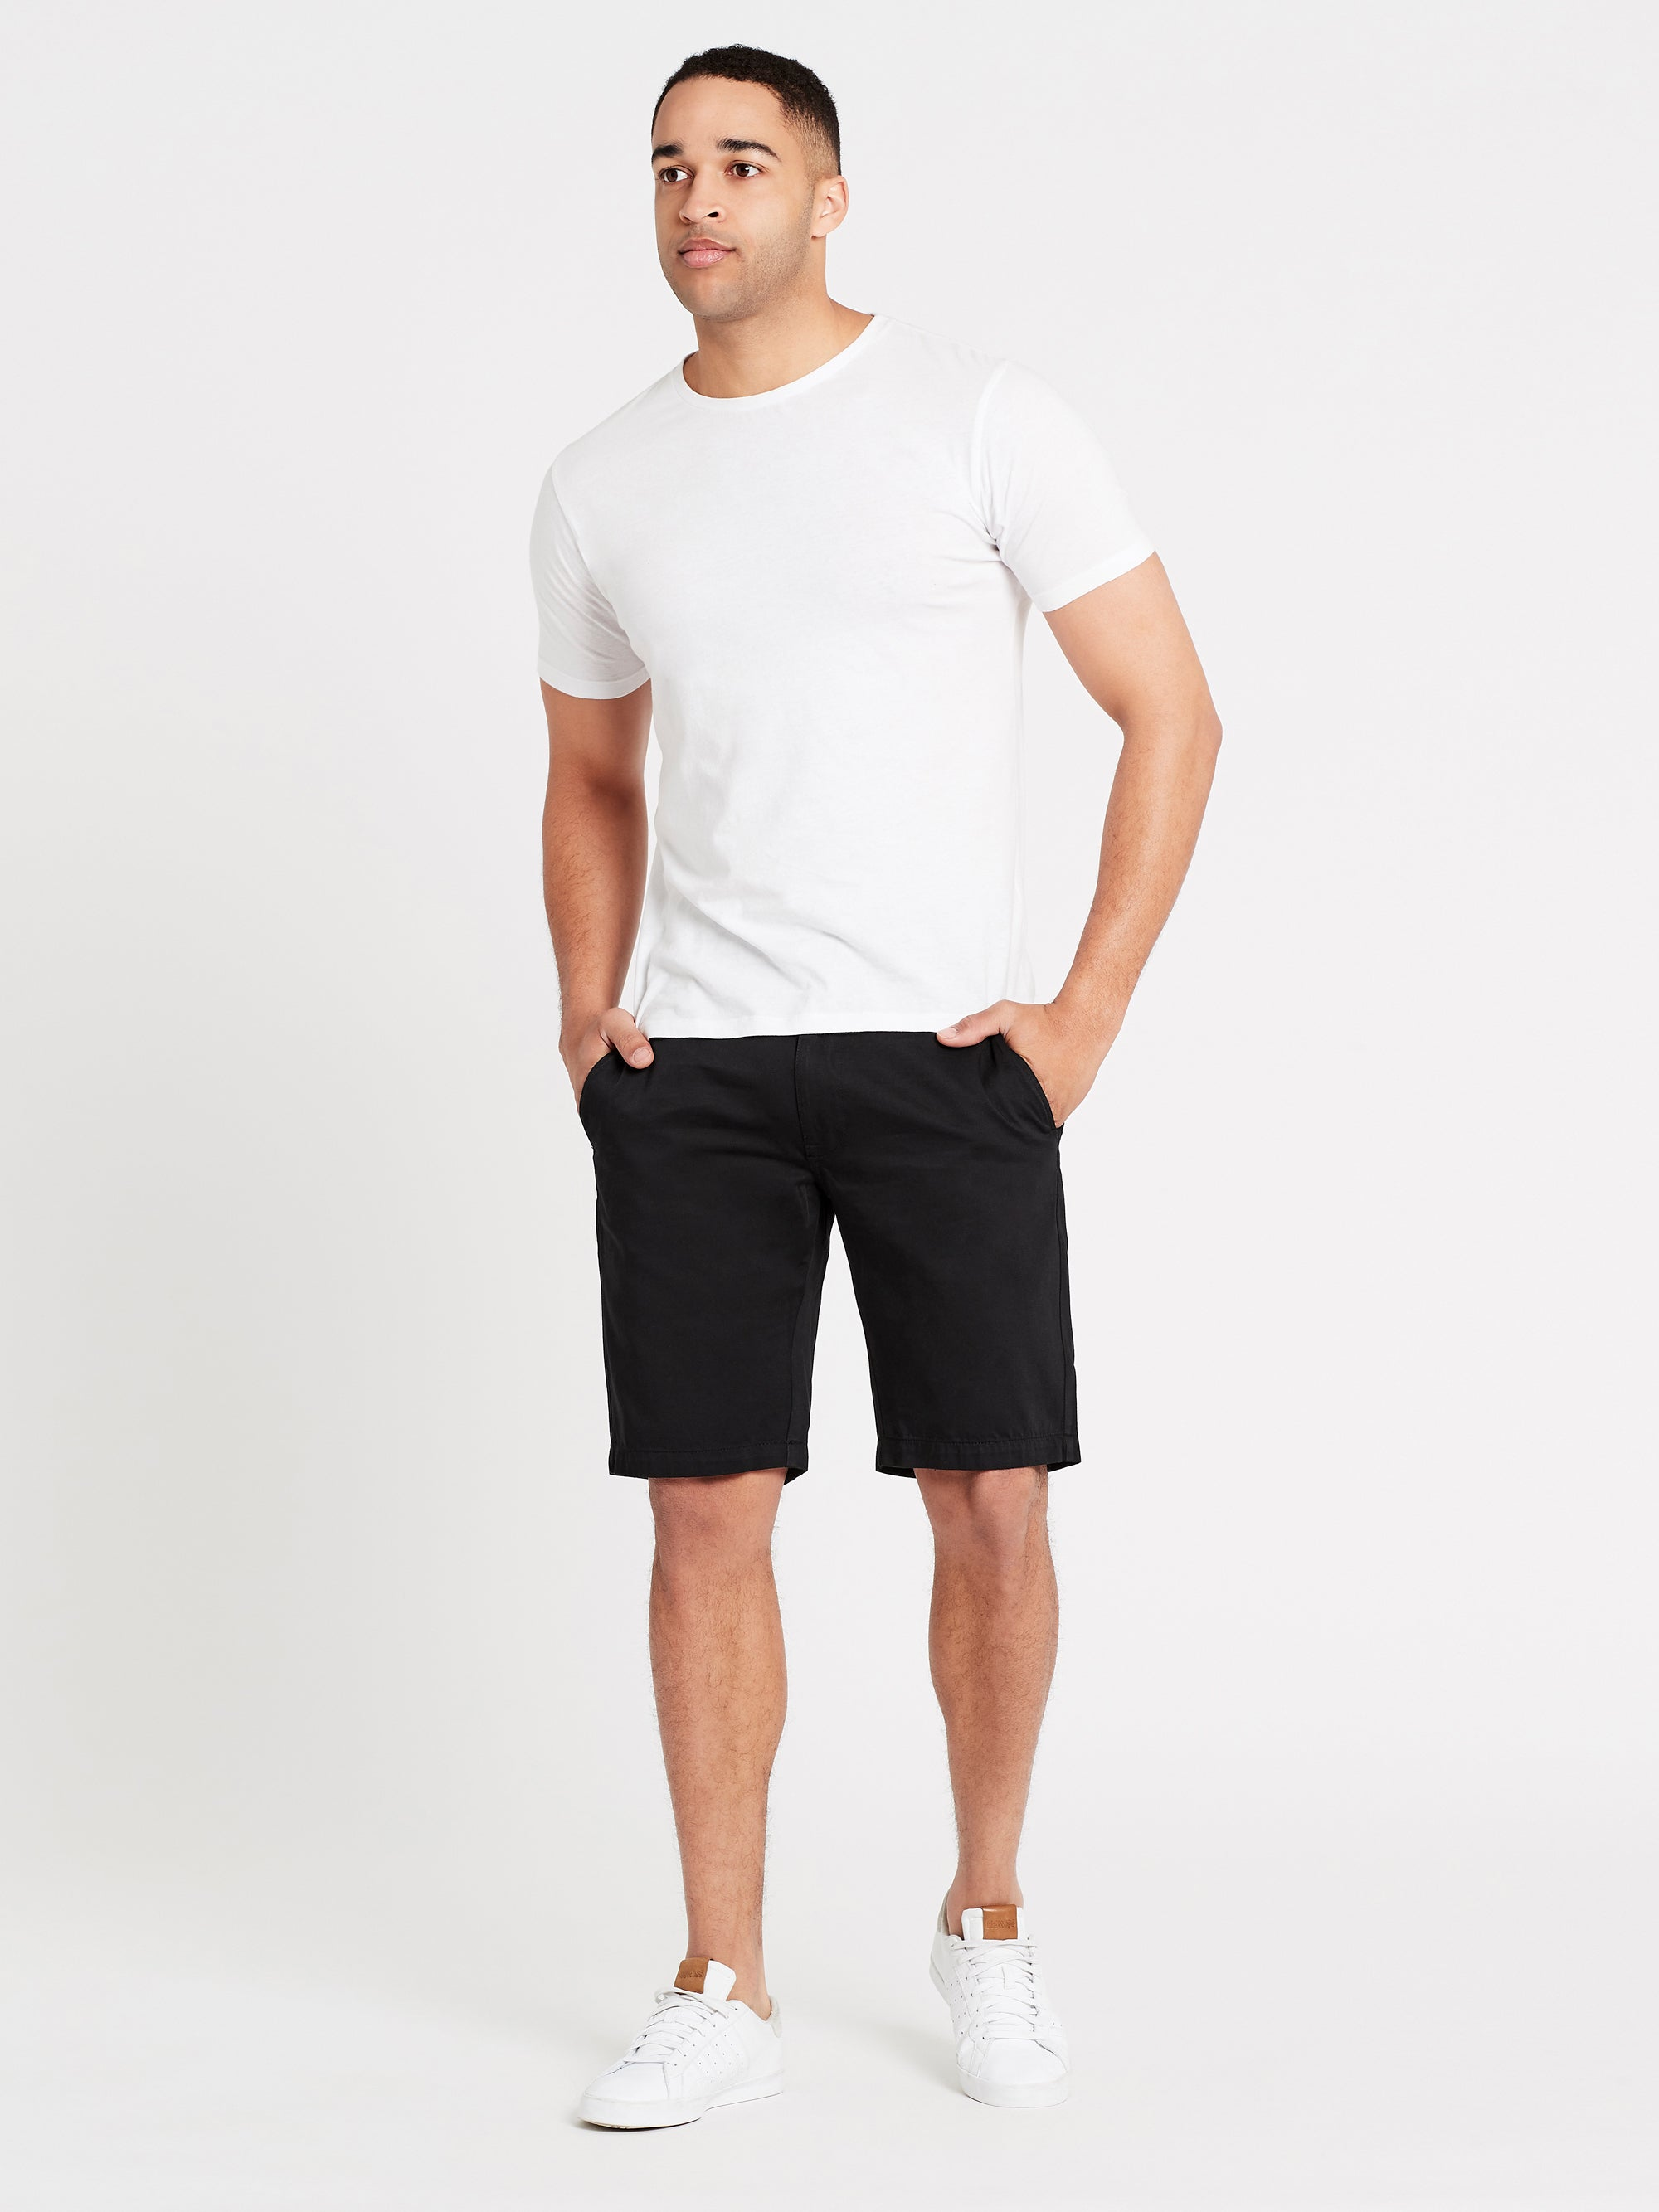 Chino Regular Fit Shorts in Black